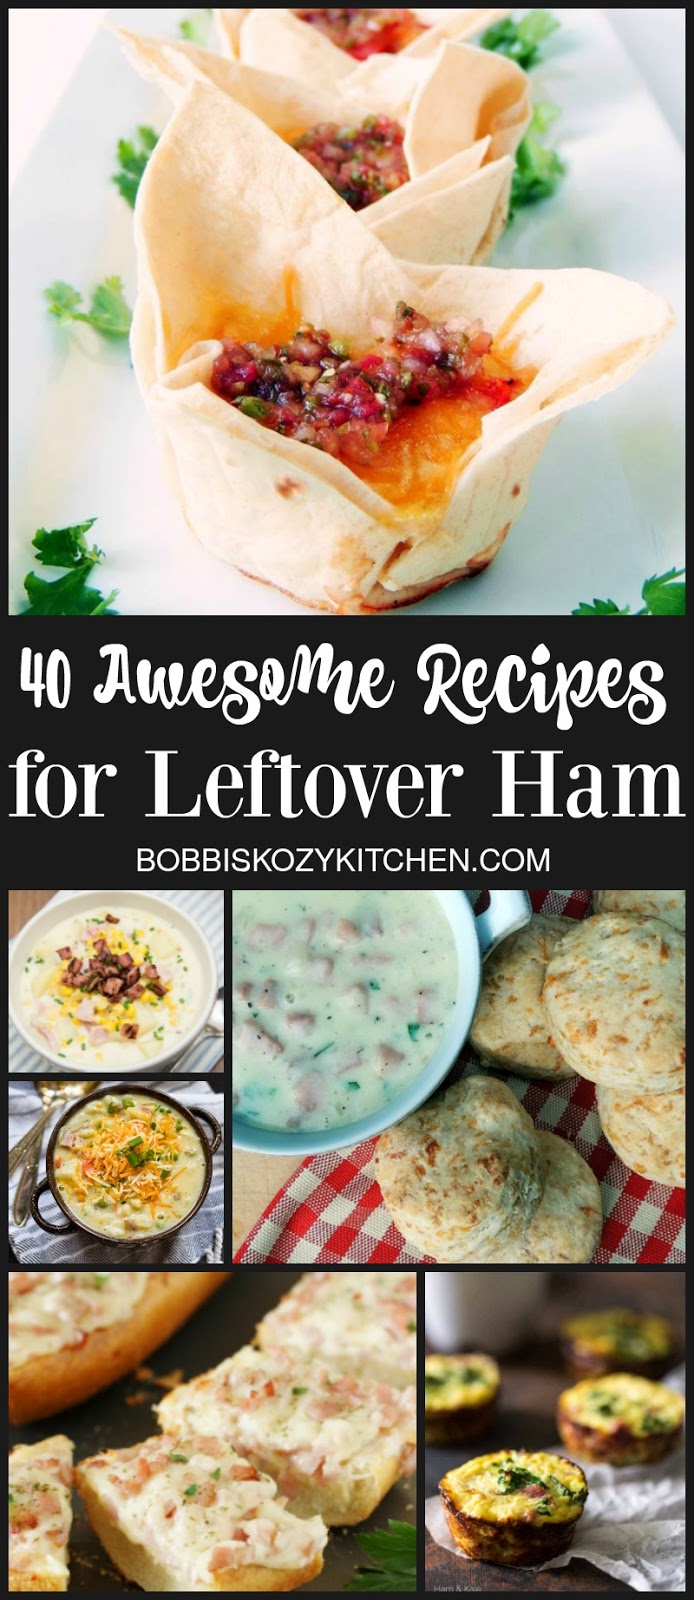 40 Awesome Recipes for Your Leftover Holiday Ham from www.bobbiskozykitchen.com